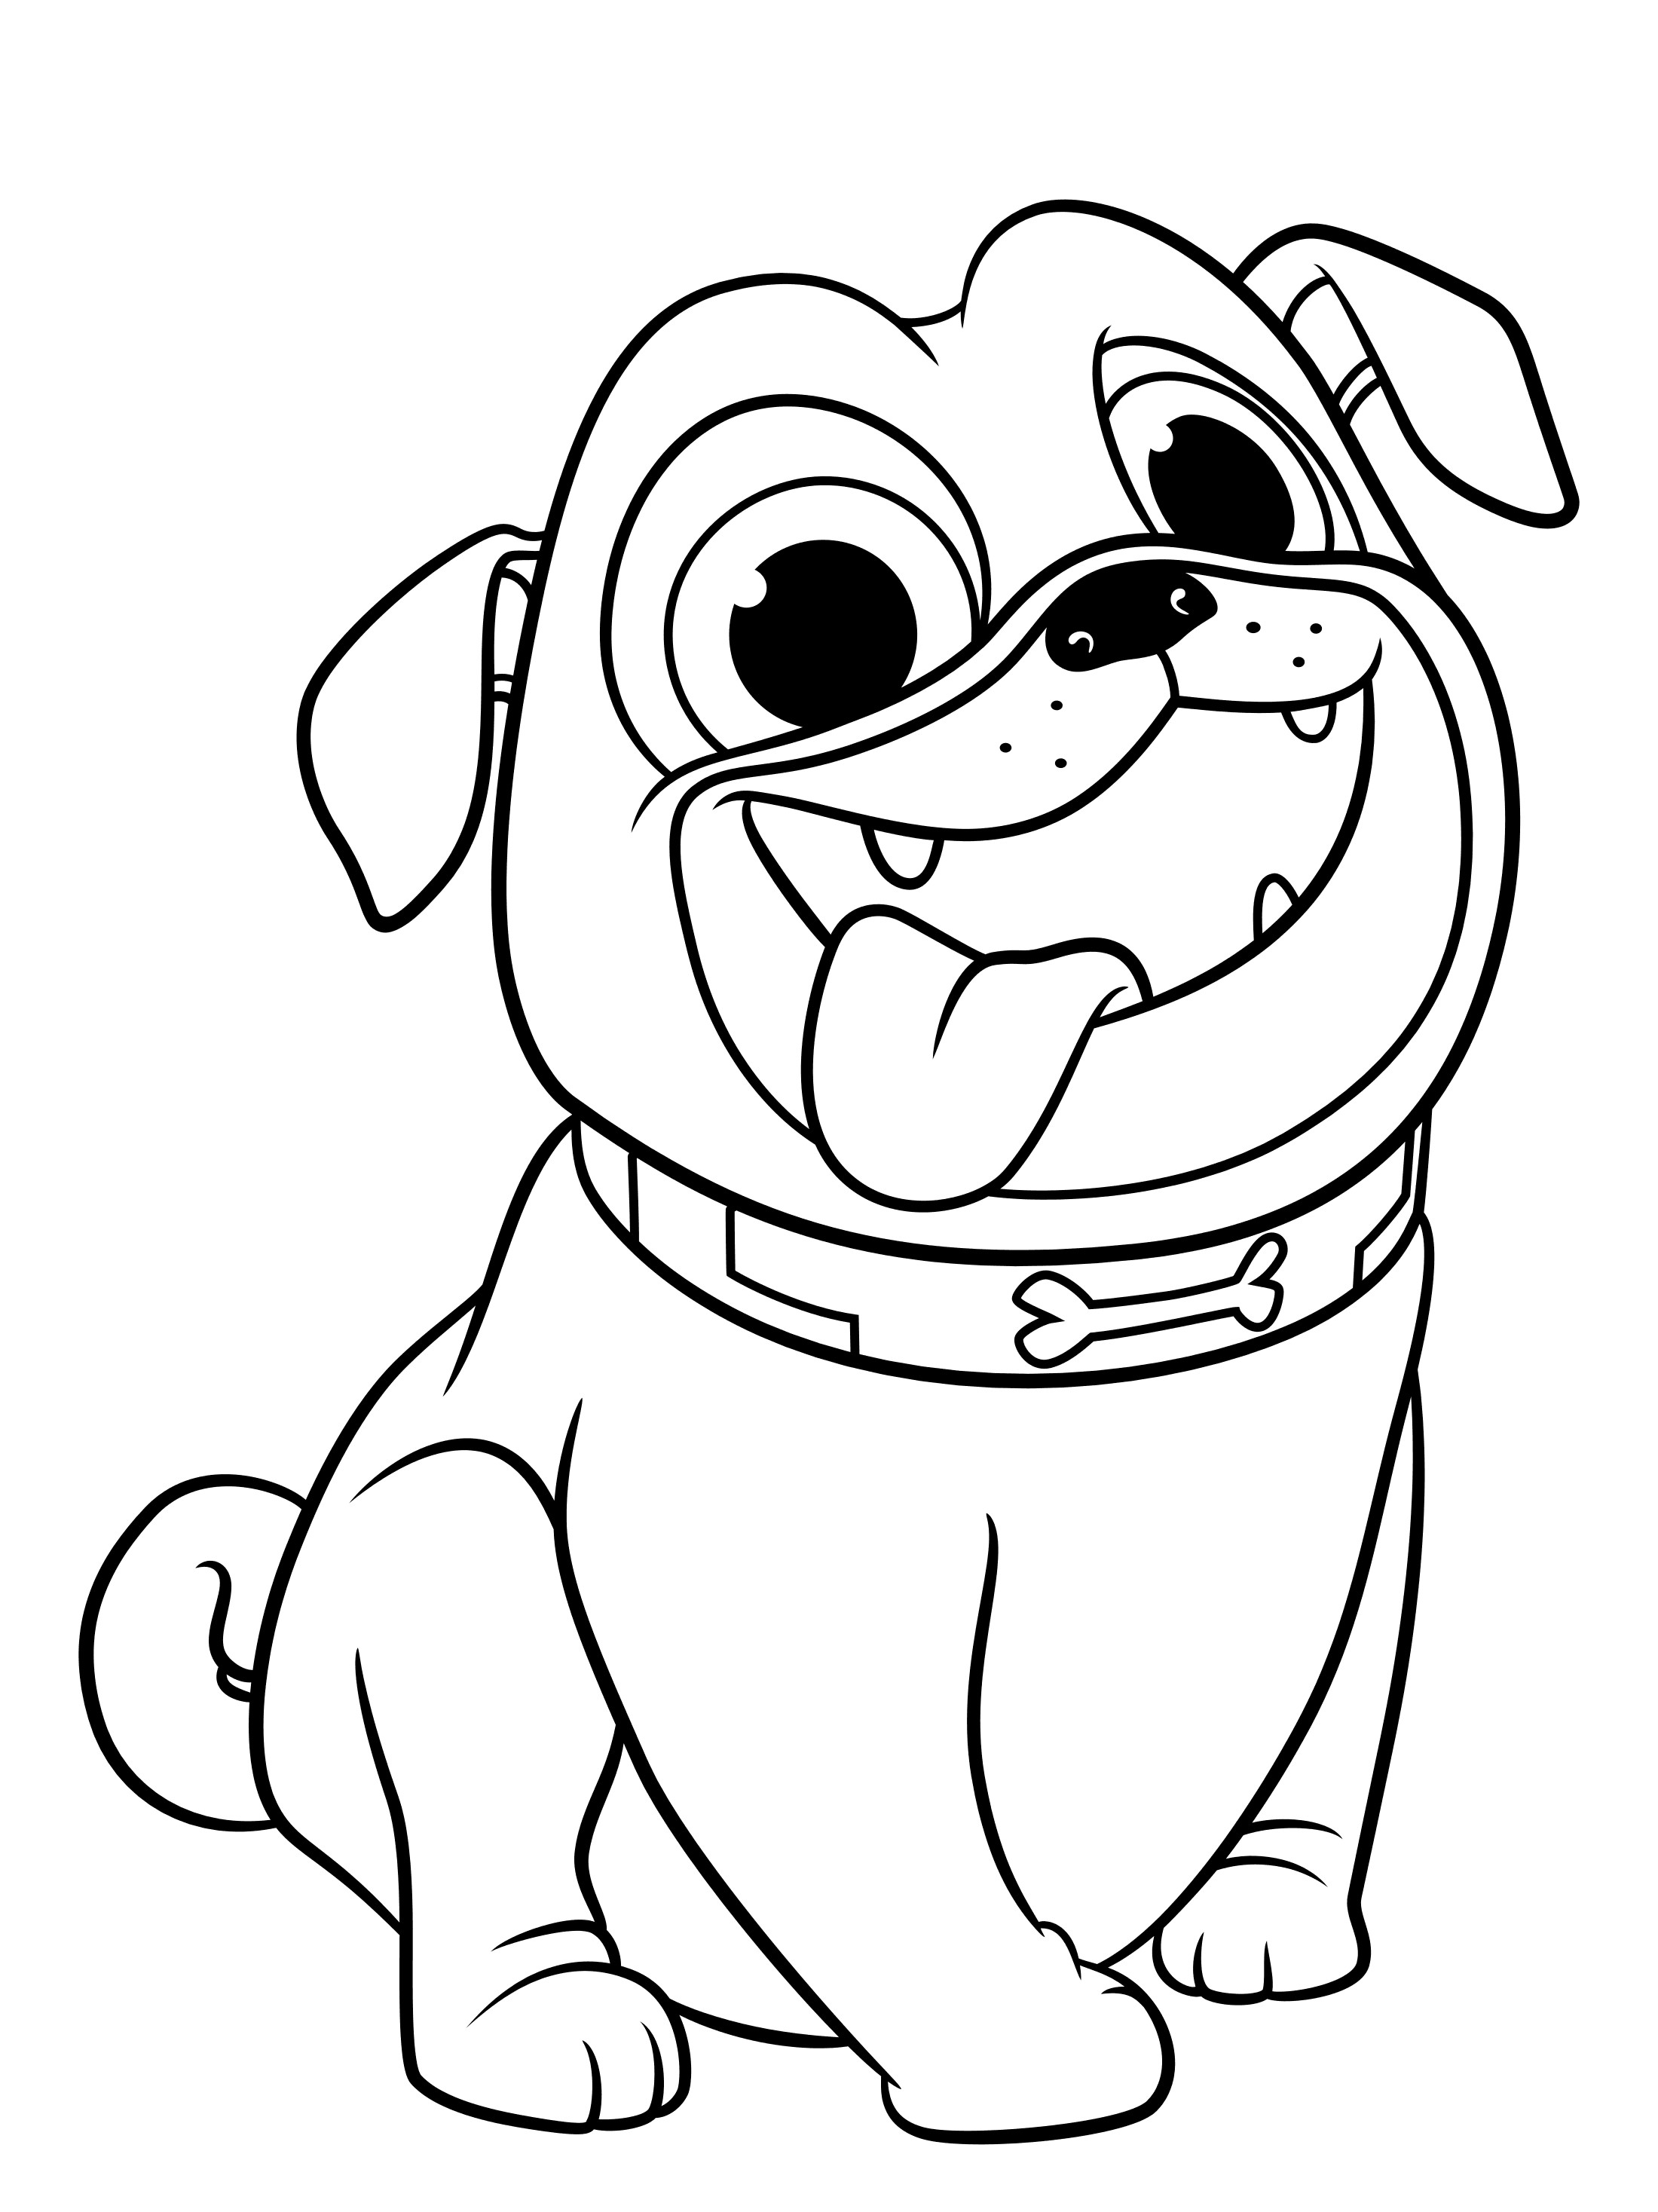 dog coloring picture dog dogs adult coloring pages coloring picture dog